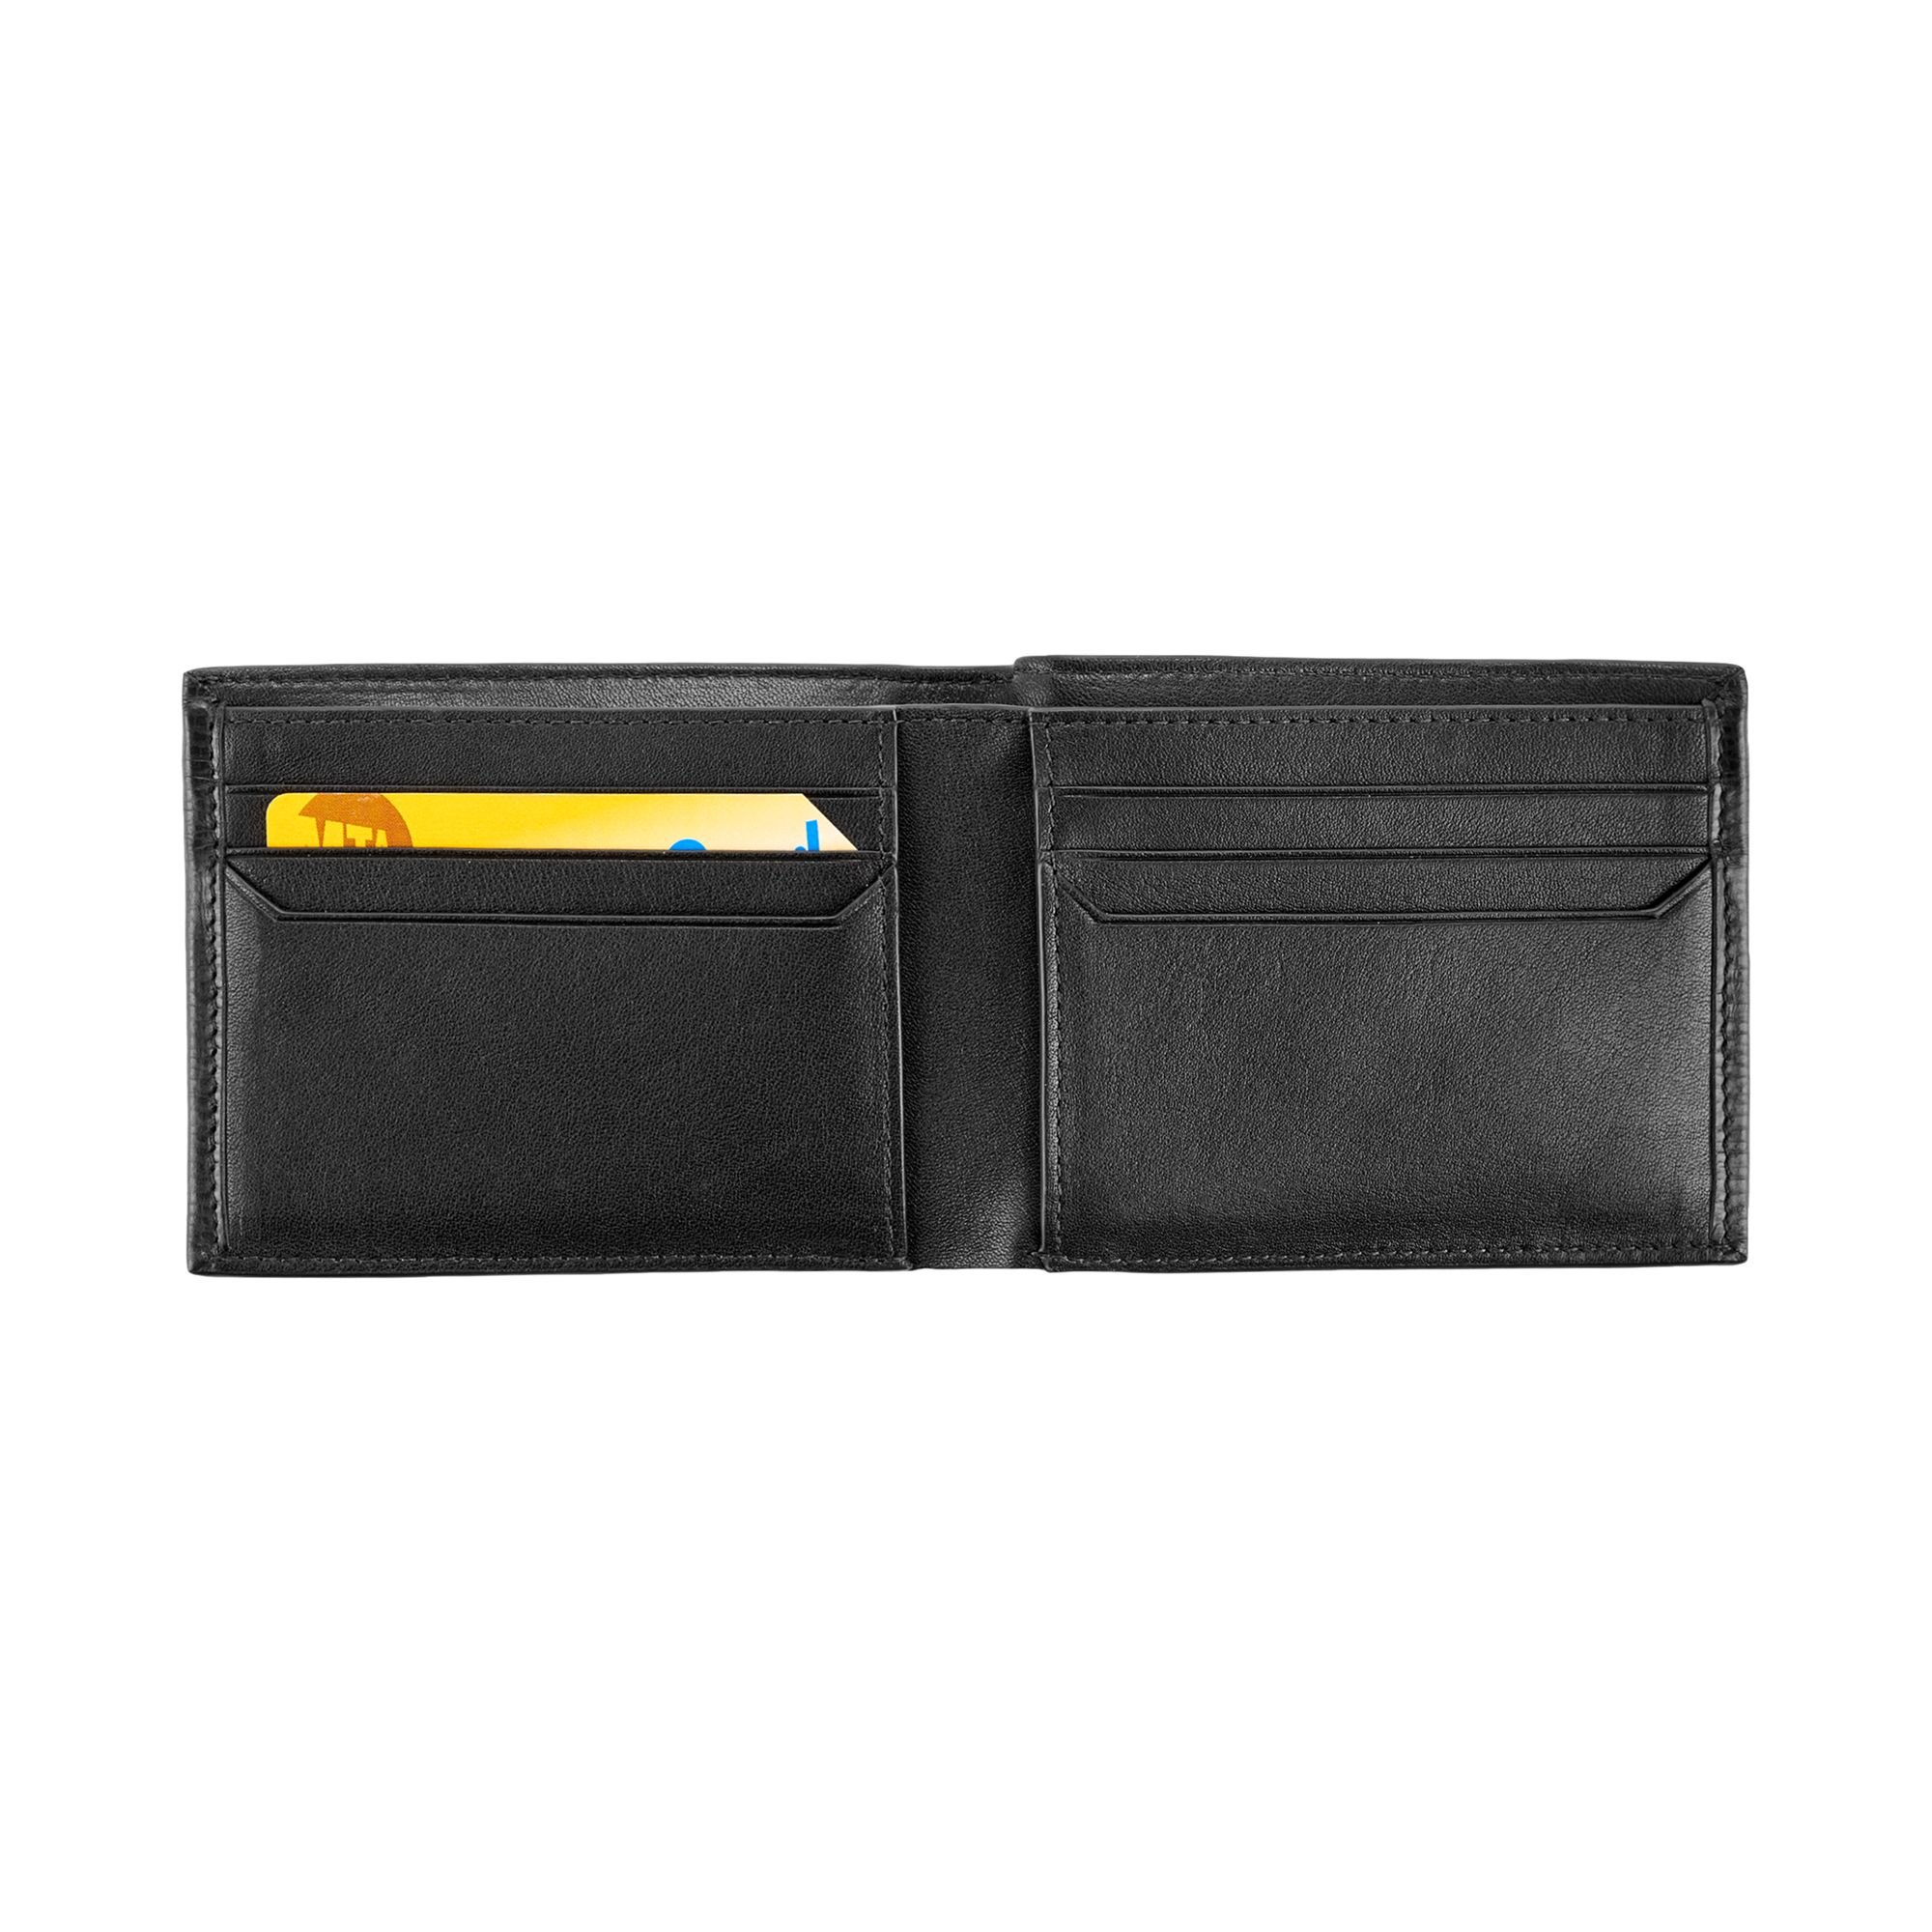 TUMI Men's Monaco Double Billfold, black, one size